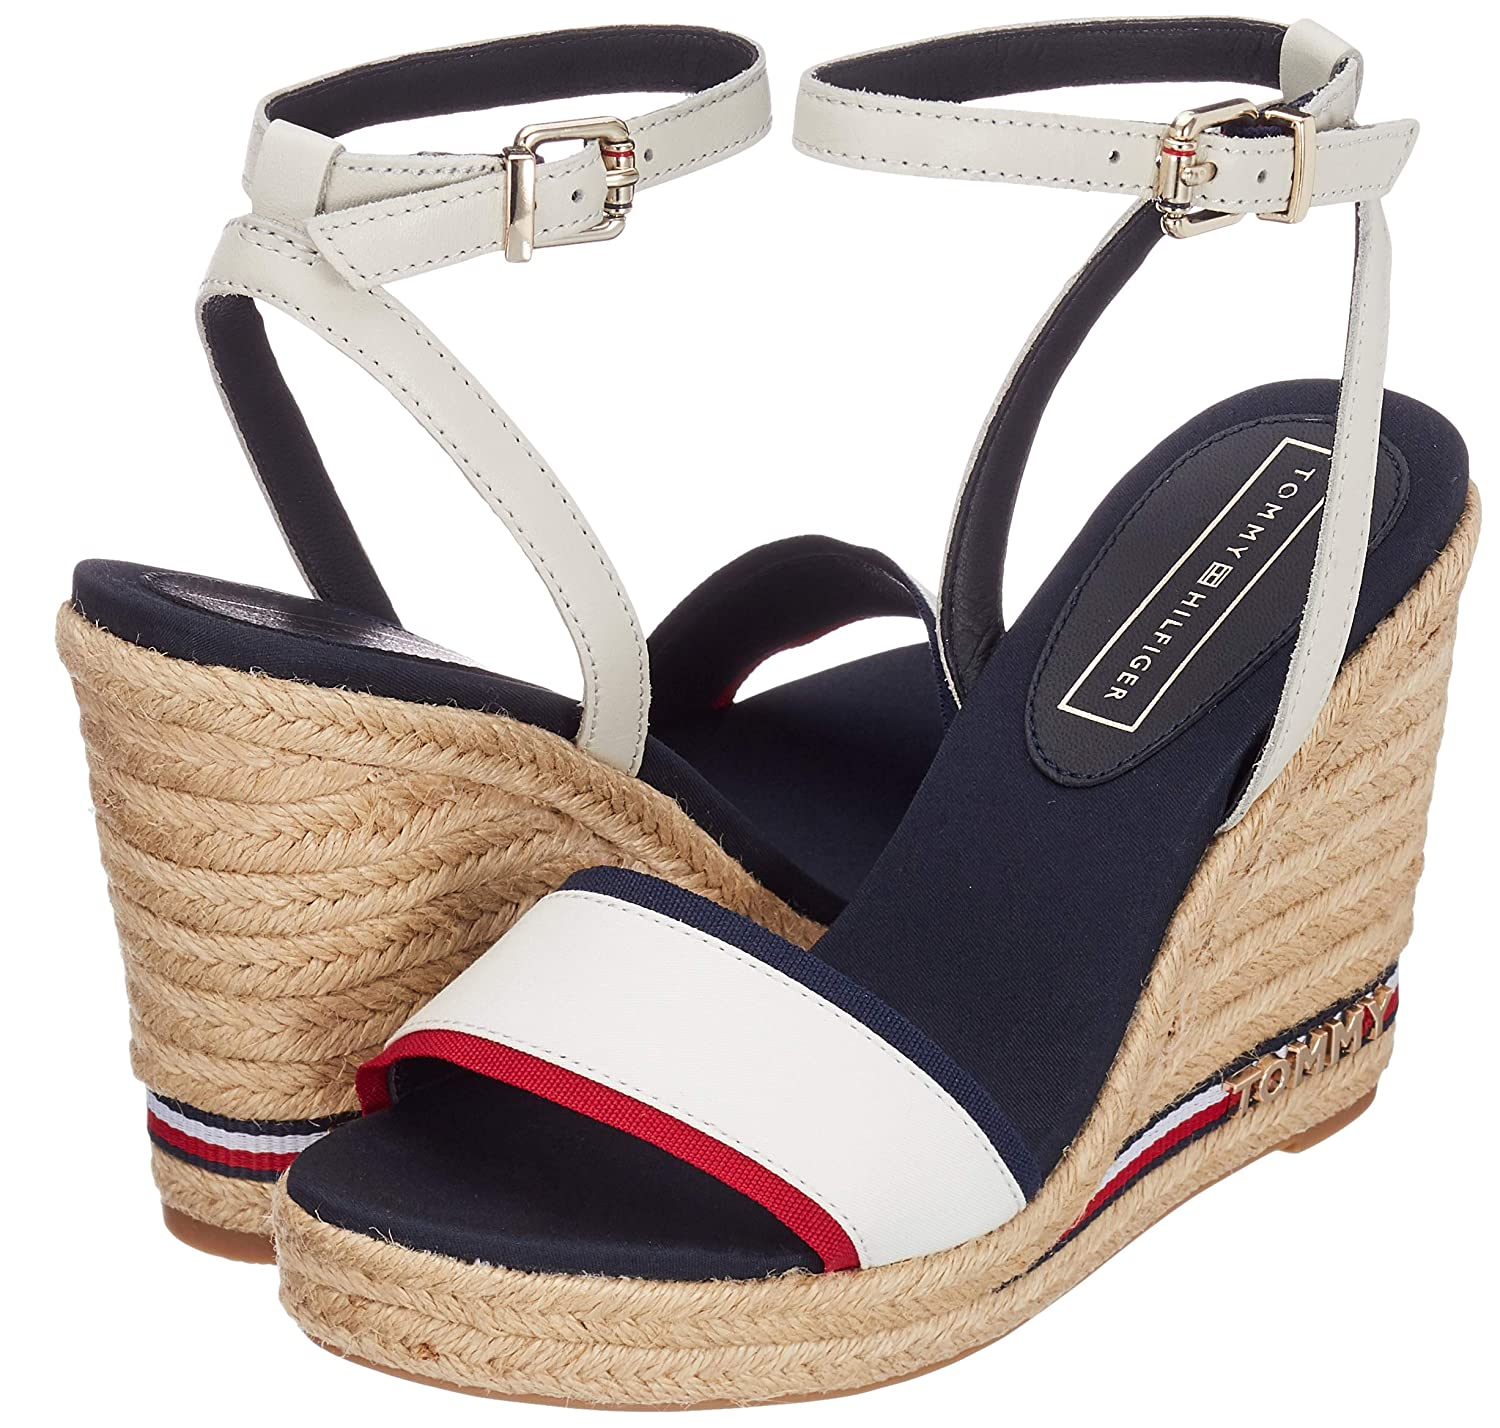 32b3f494d4 Amazon.com | Tommy Hilfiger Iconic Elena Corporate Ribbon Womens Wedge  Sandals in White Navy Red - 36 EU | Shoes